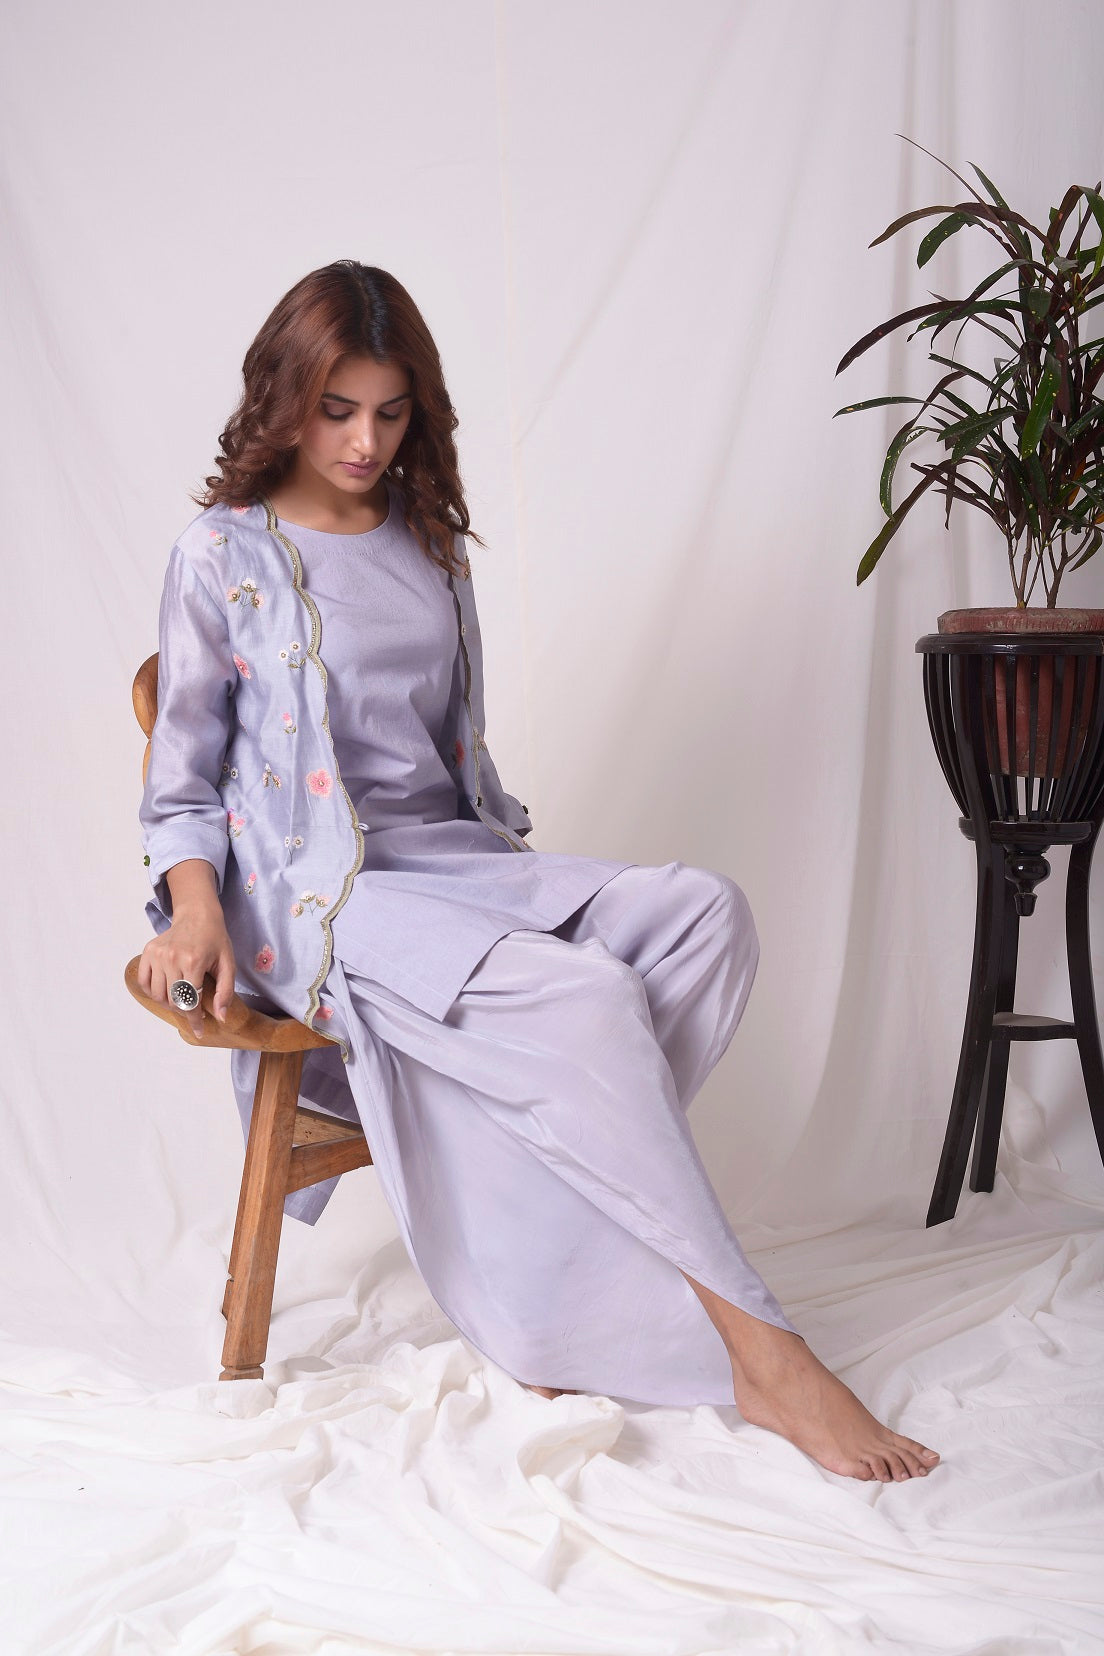 Buy lavender chanderi suit online in USA. Suit has simple red and green work. Kurta has 3/4 length sleeves and purple dhoti.Kurta has jacket like shrug. Simple look makes it elegant. Be the talk of parties and weddings with exquisite designer gowns from Pure Elegance Indian clothing store in USA. Shop online now.-full view